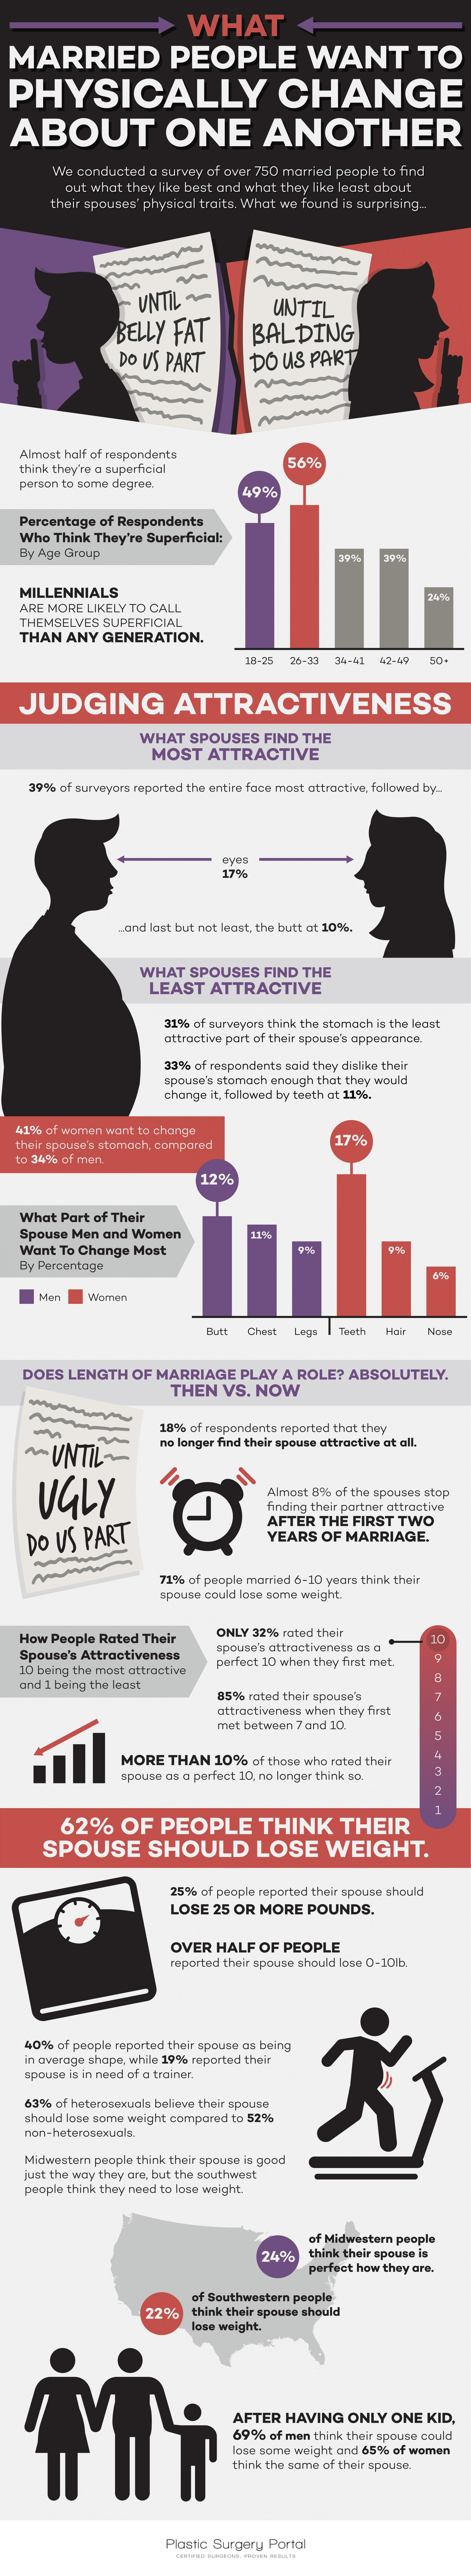 What Married Couples Most Want to Change about Their Spouse's Appearance